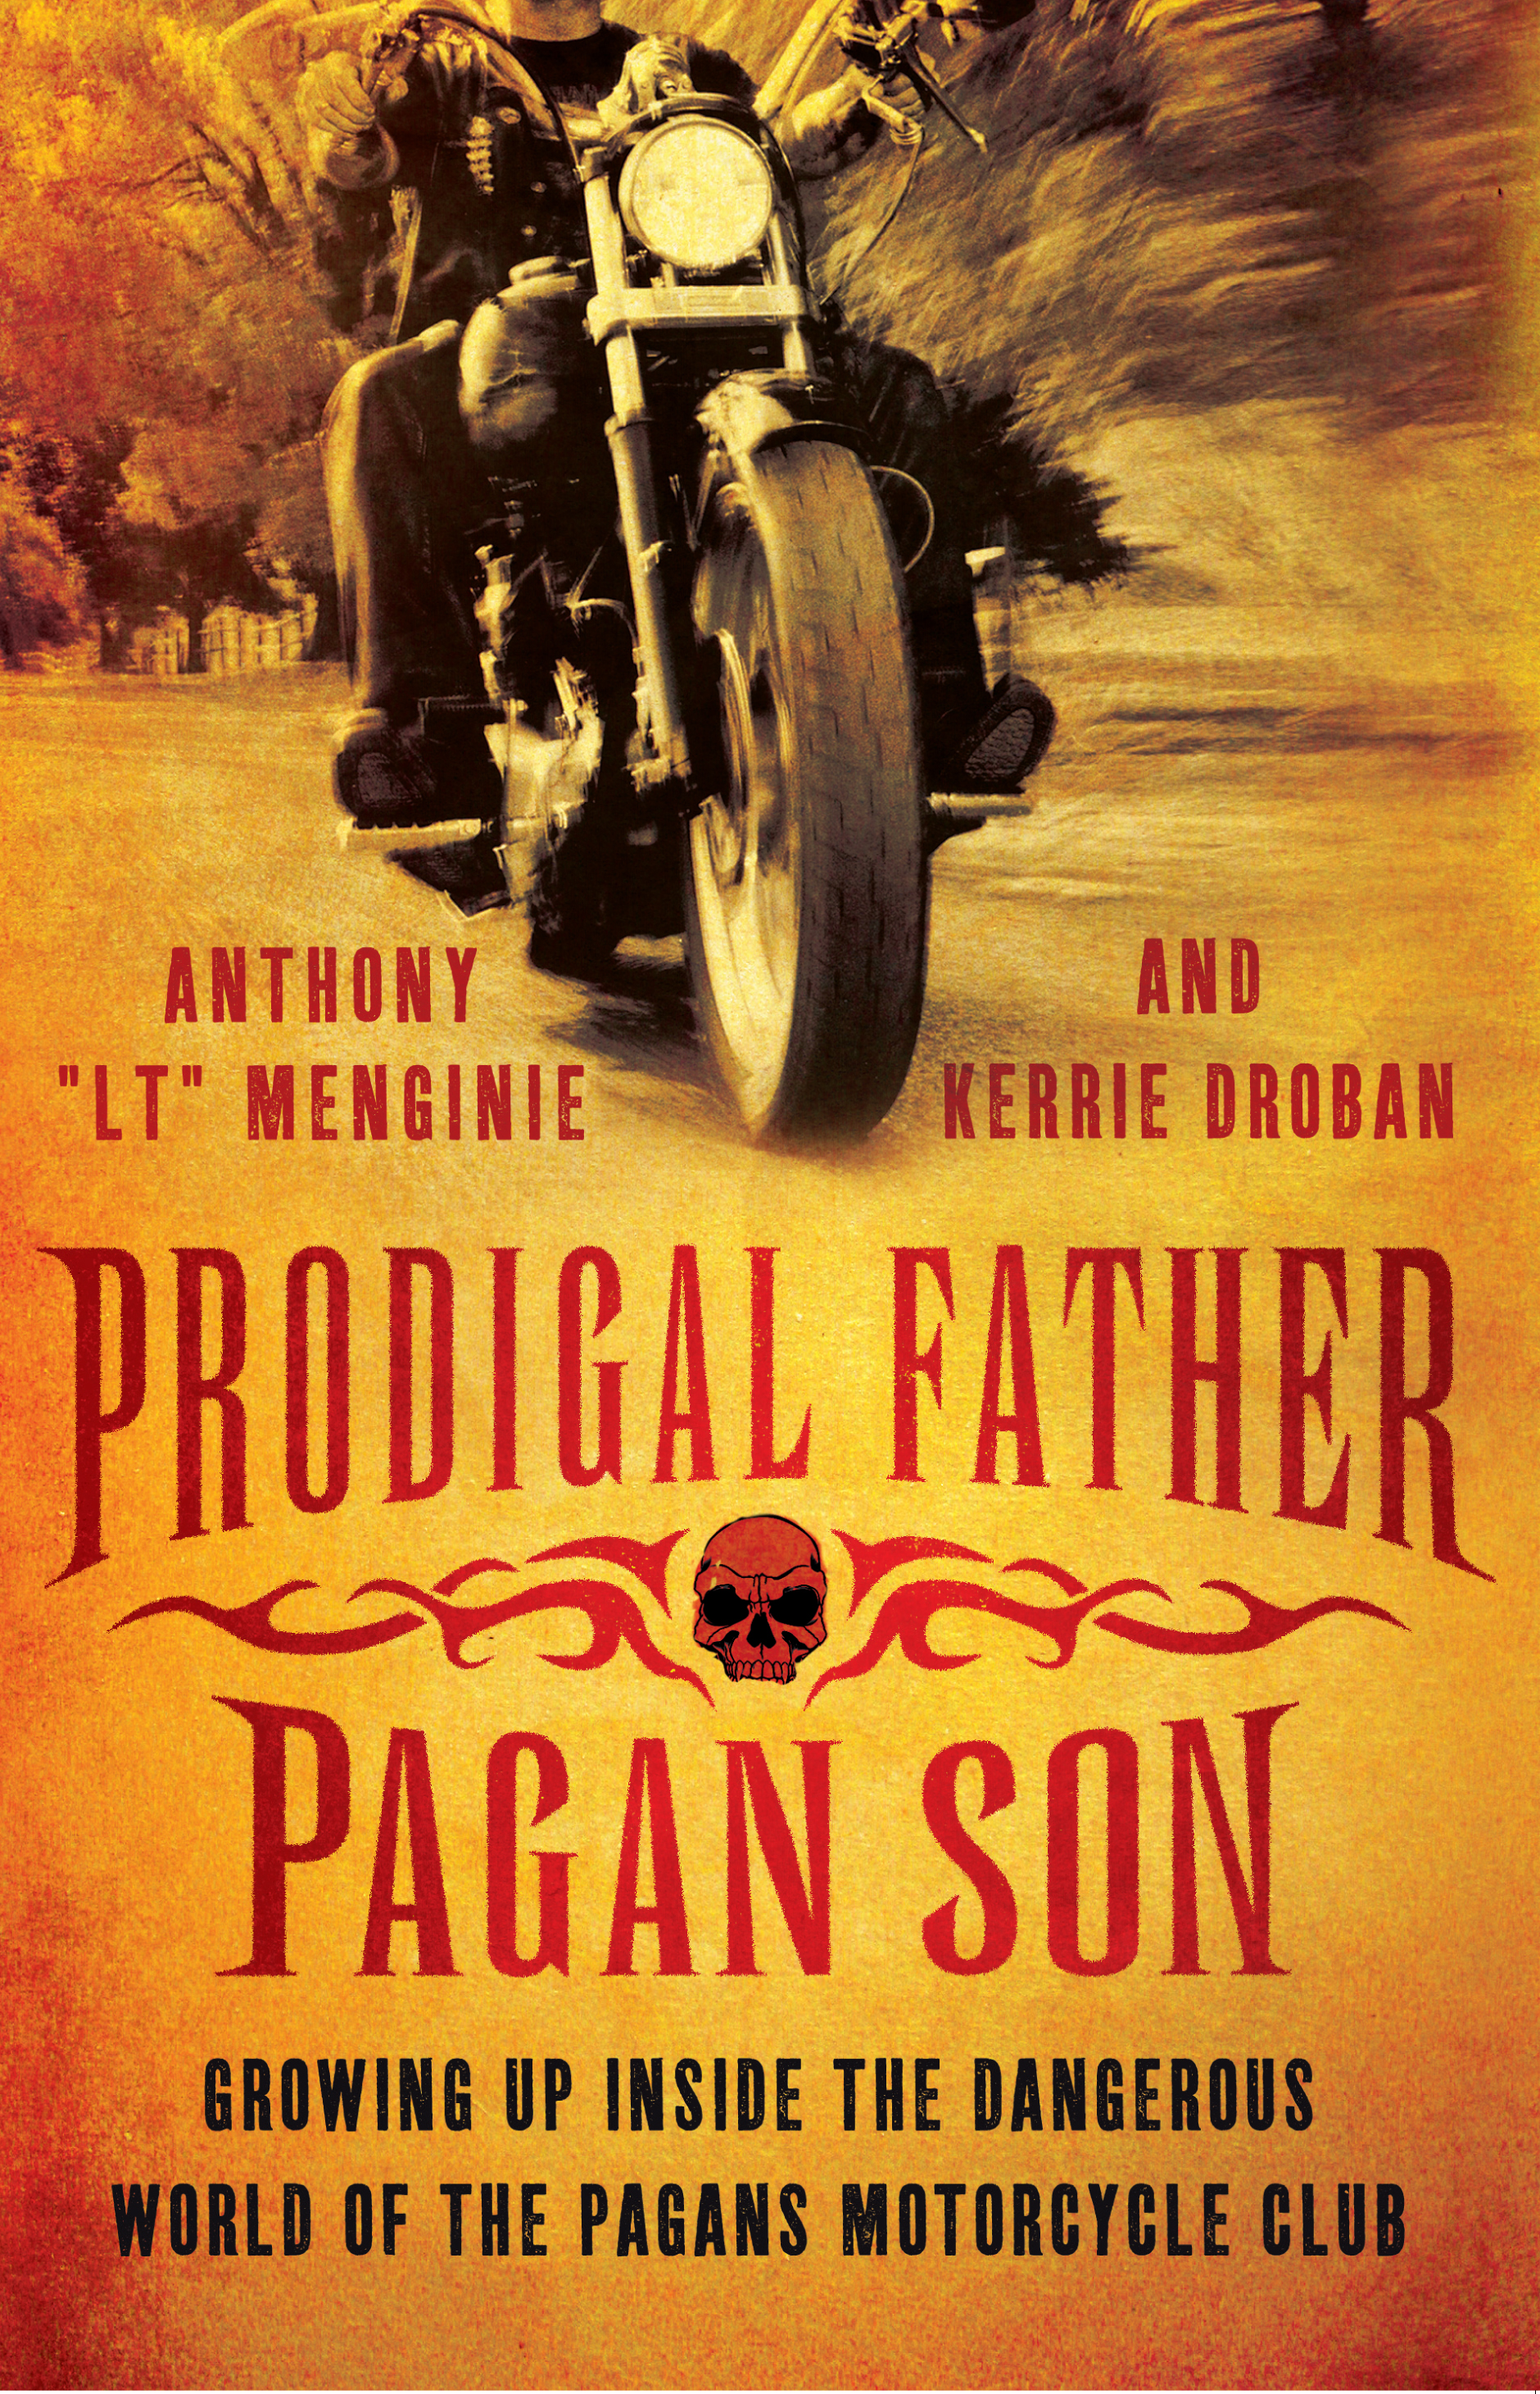 Prodigal Father, Pagan Son Growing up Inside the Dangerous World of